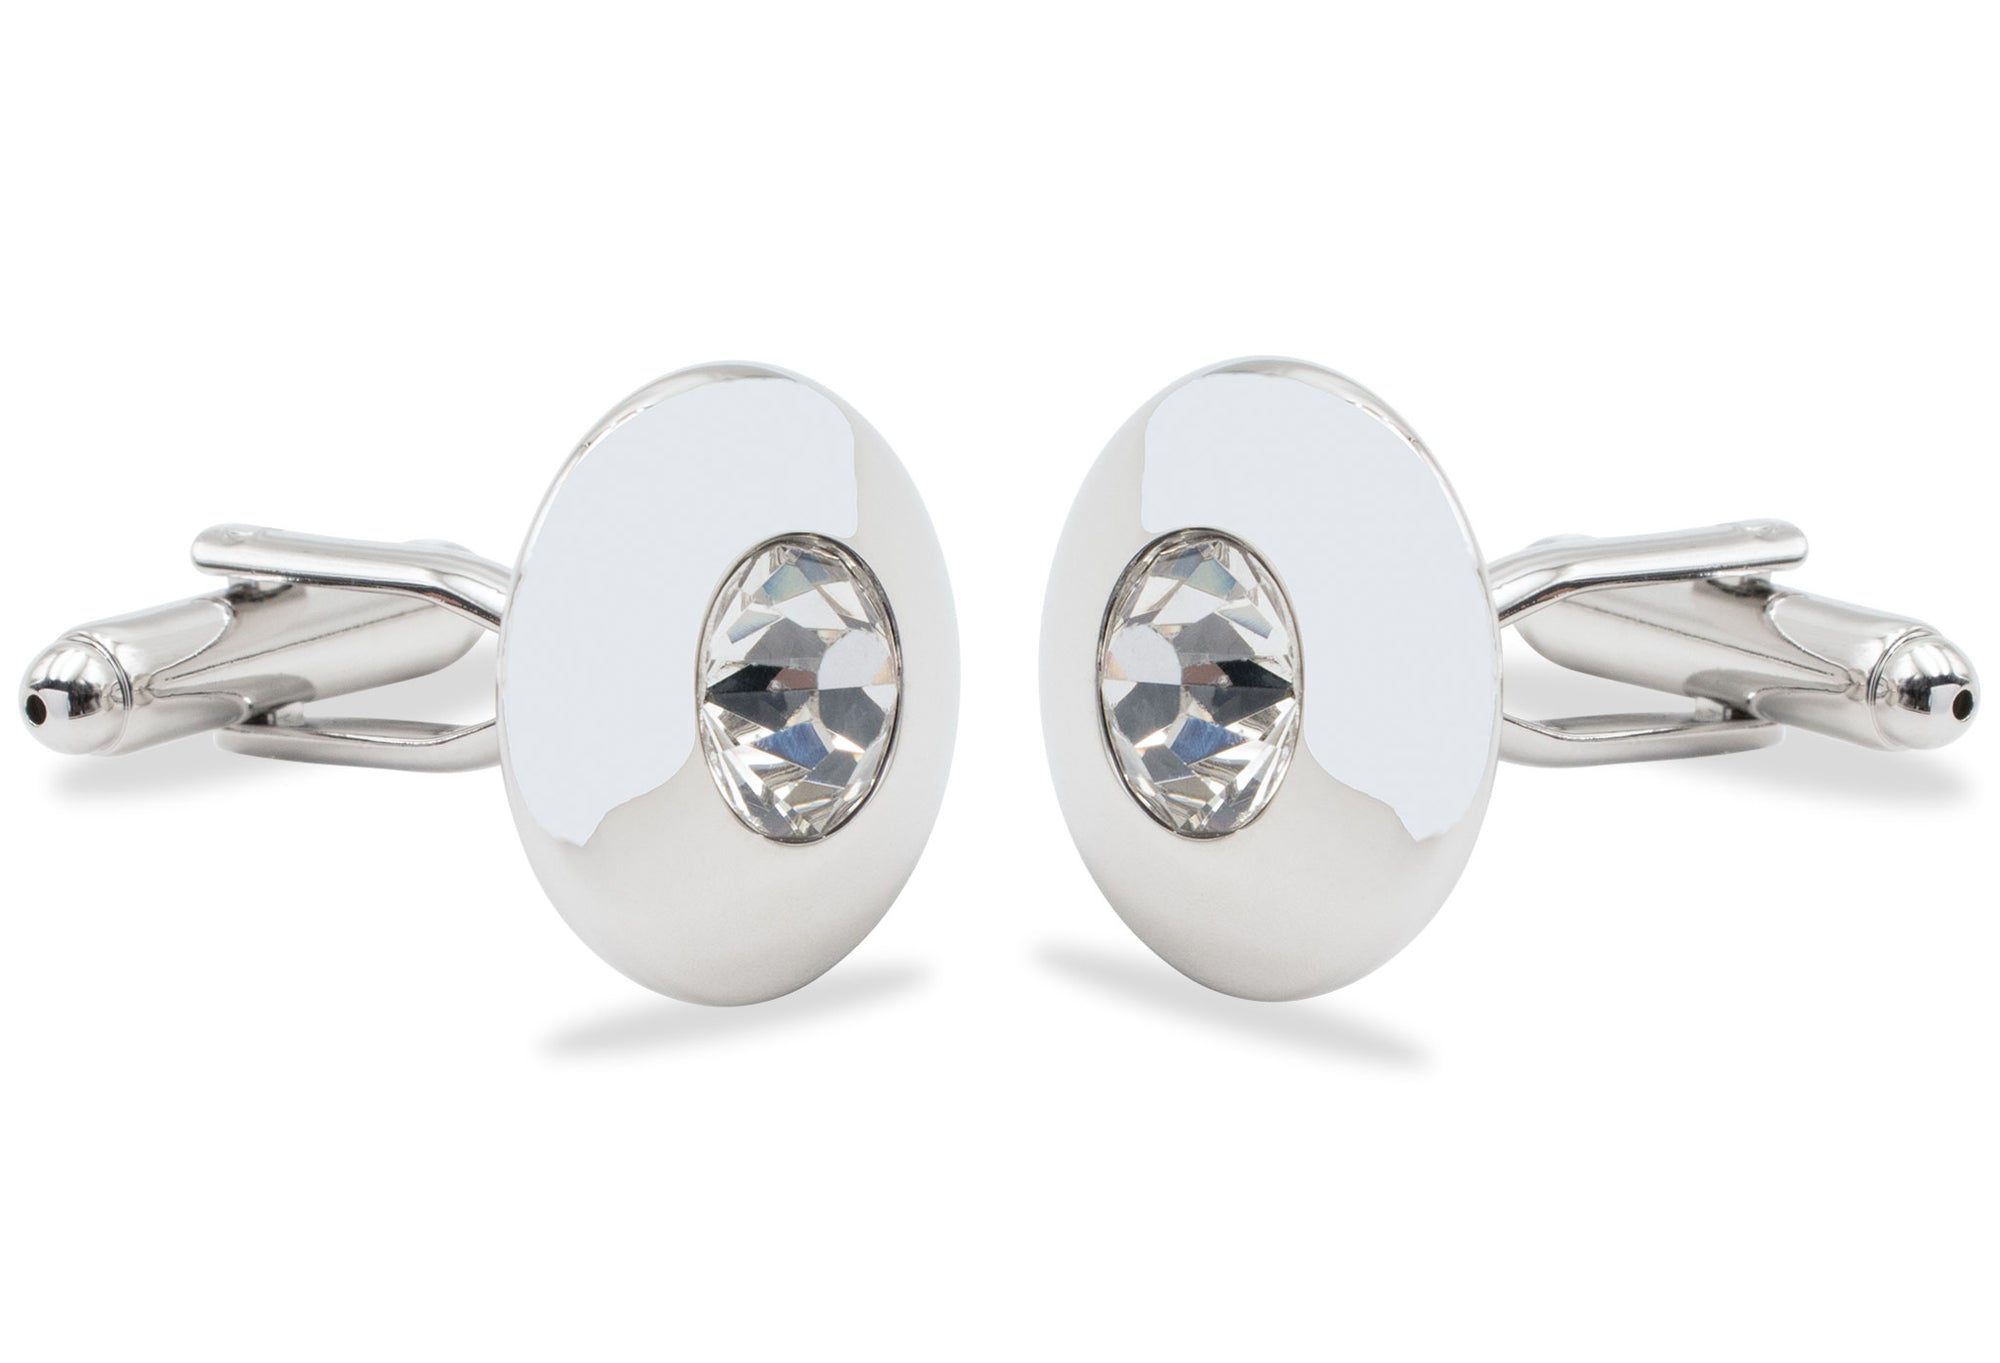 Mamporal Reflective Chrome Cufflink